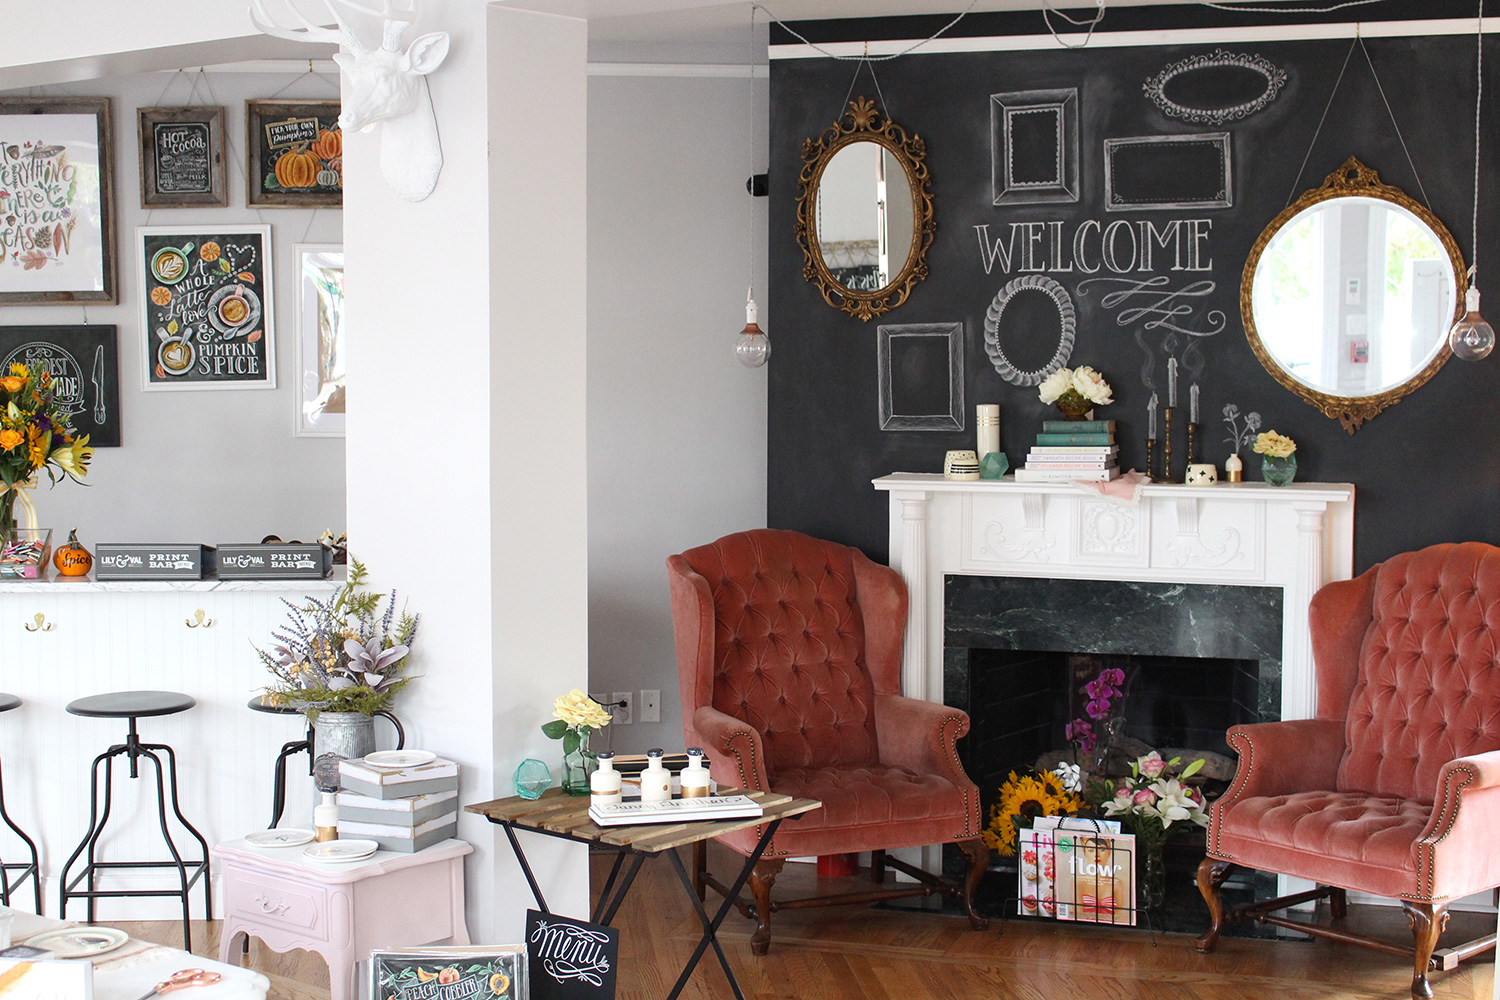 The Lily & Val Flagship Store Gift Boutique In Pittsburgh is Celebrating Its One Year Anniversary